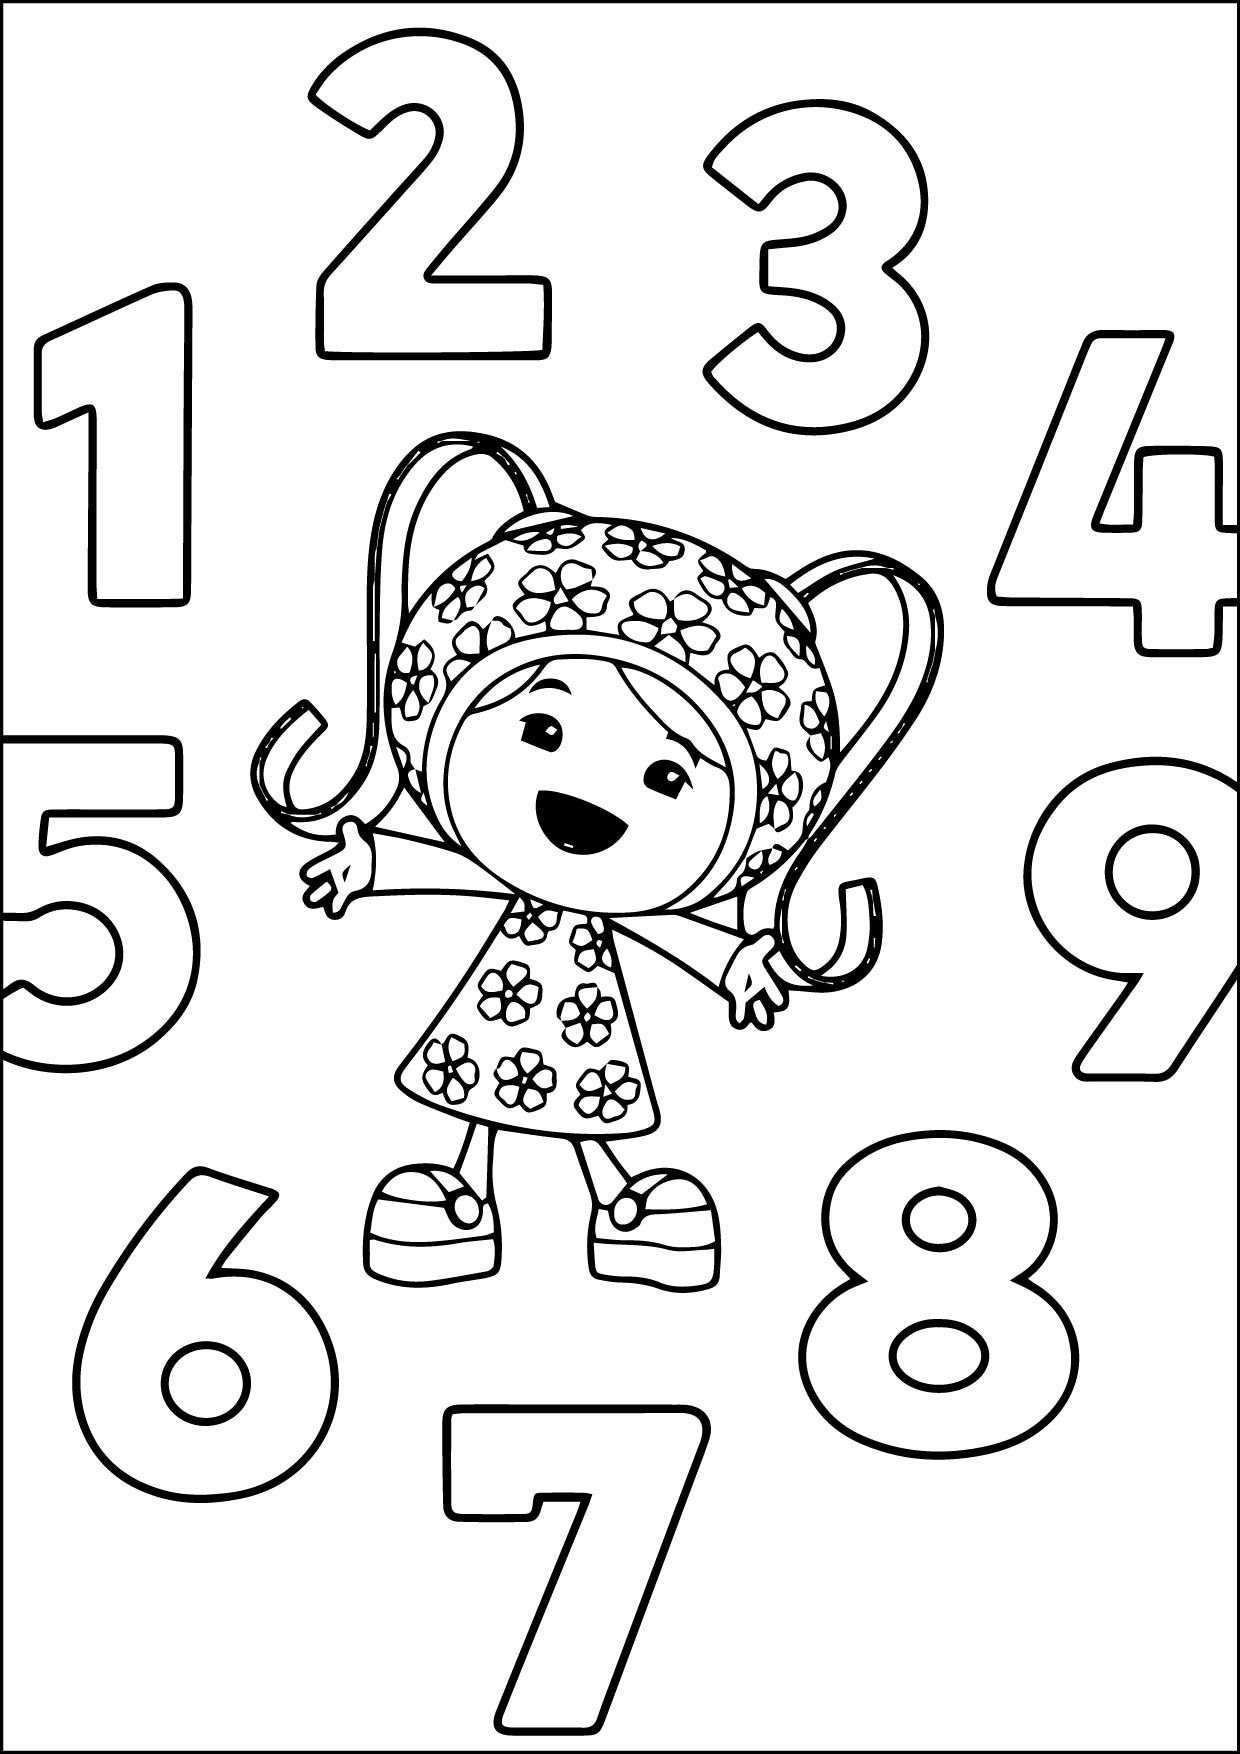 Cool Coloring Page 11 10 01 Check More At